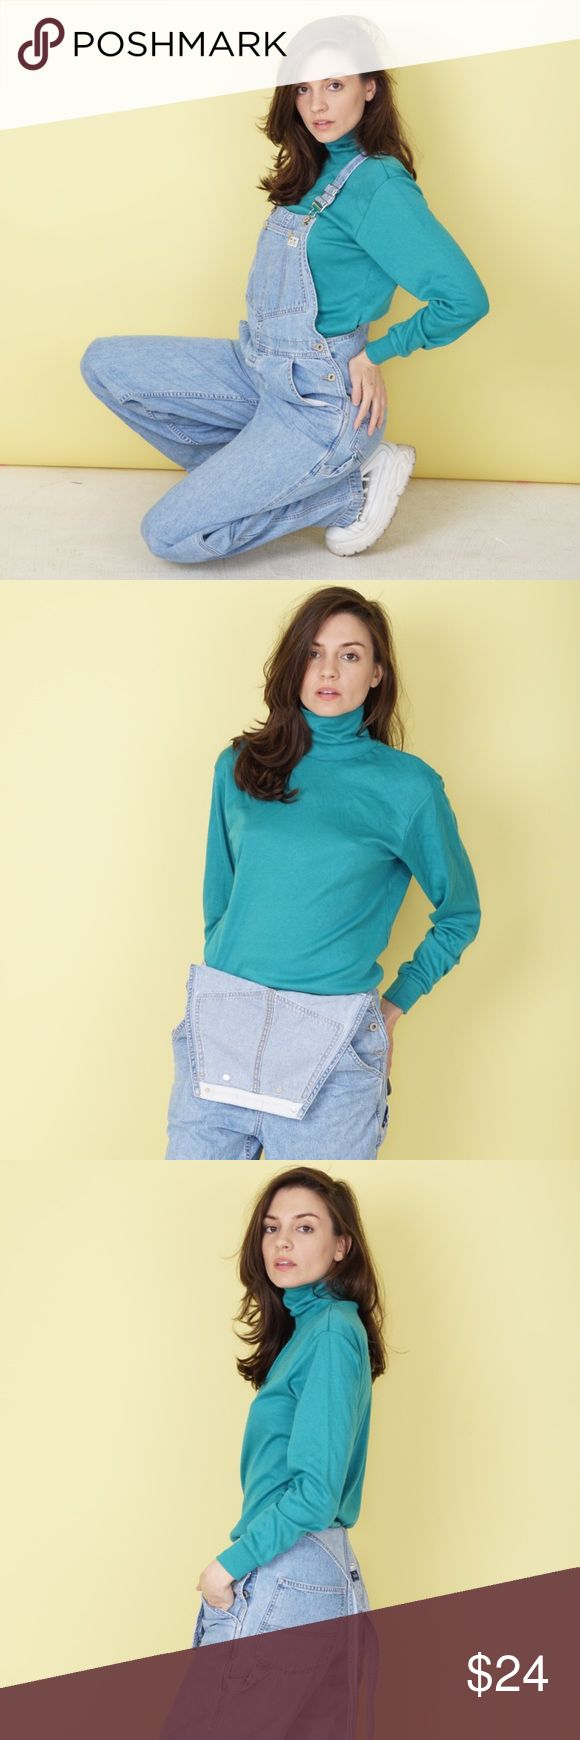 """80s green turtleneck Vintage 80s Bobbie Brooks sport turtleneck with original tag still attached. 50% Cotton, 50% Polyester. Made in USA. Excellent Condition. Size marked S; bust 37"""", waist 34"""", sleeve length 21.5"""", shoulder seam 2 seam 17"""", length 25"""". Shirt run large; please refer to measurements. Vintage Tops Tees - Long Sleeve"""